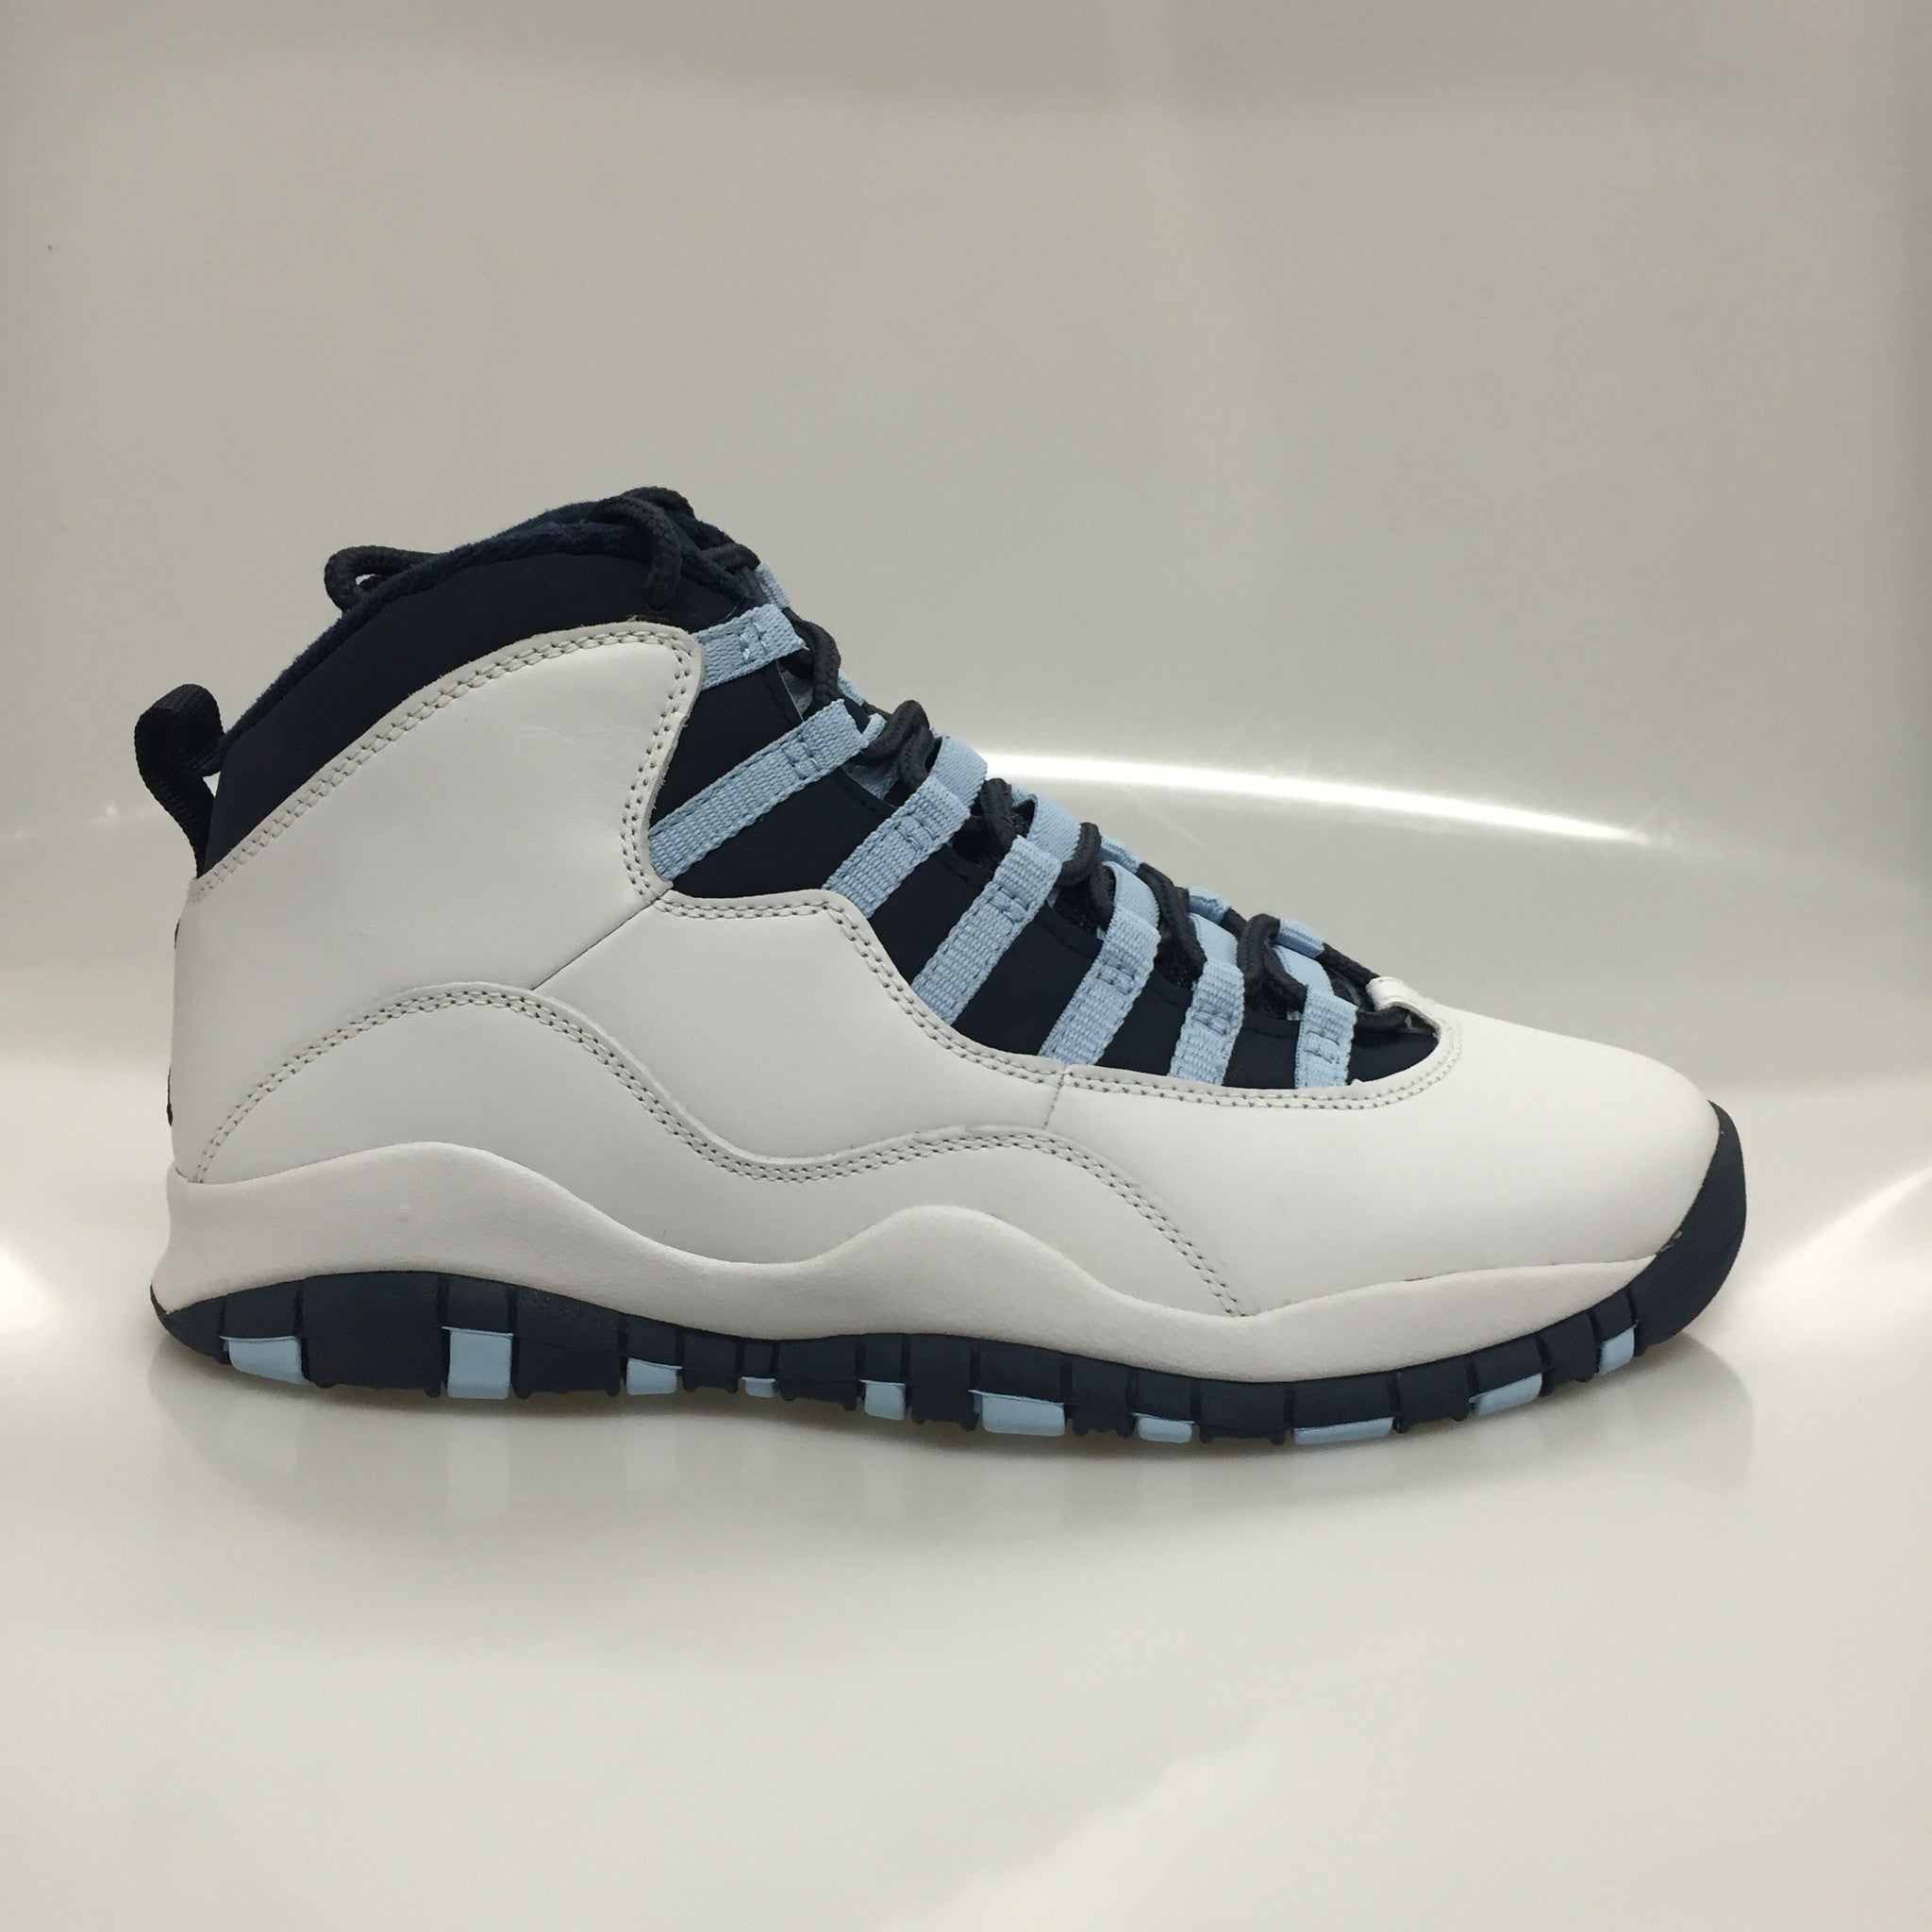 "Air Jordan 10 2005 ""Ice Blue"" Size 8.5 DS"